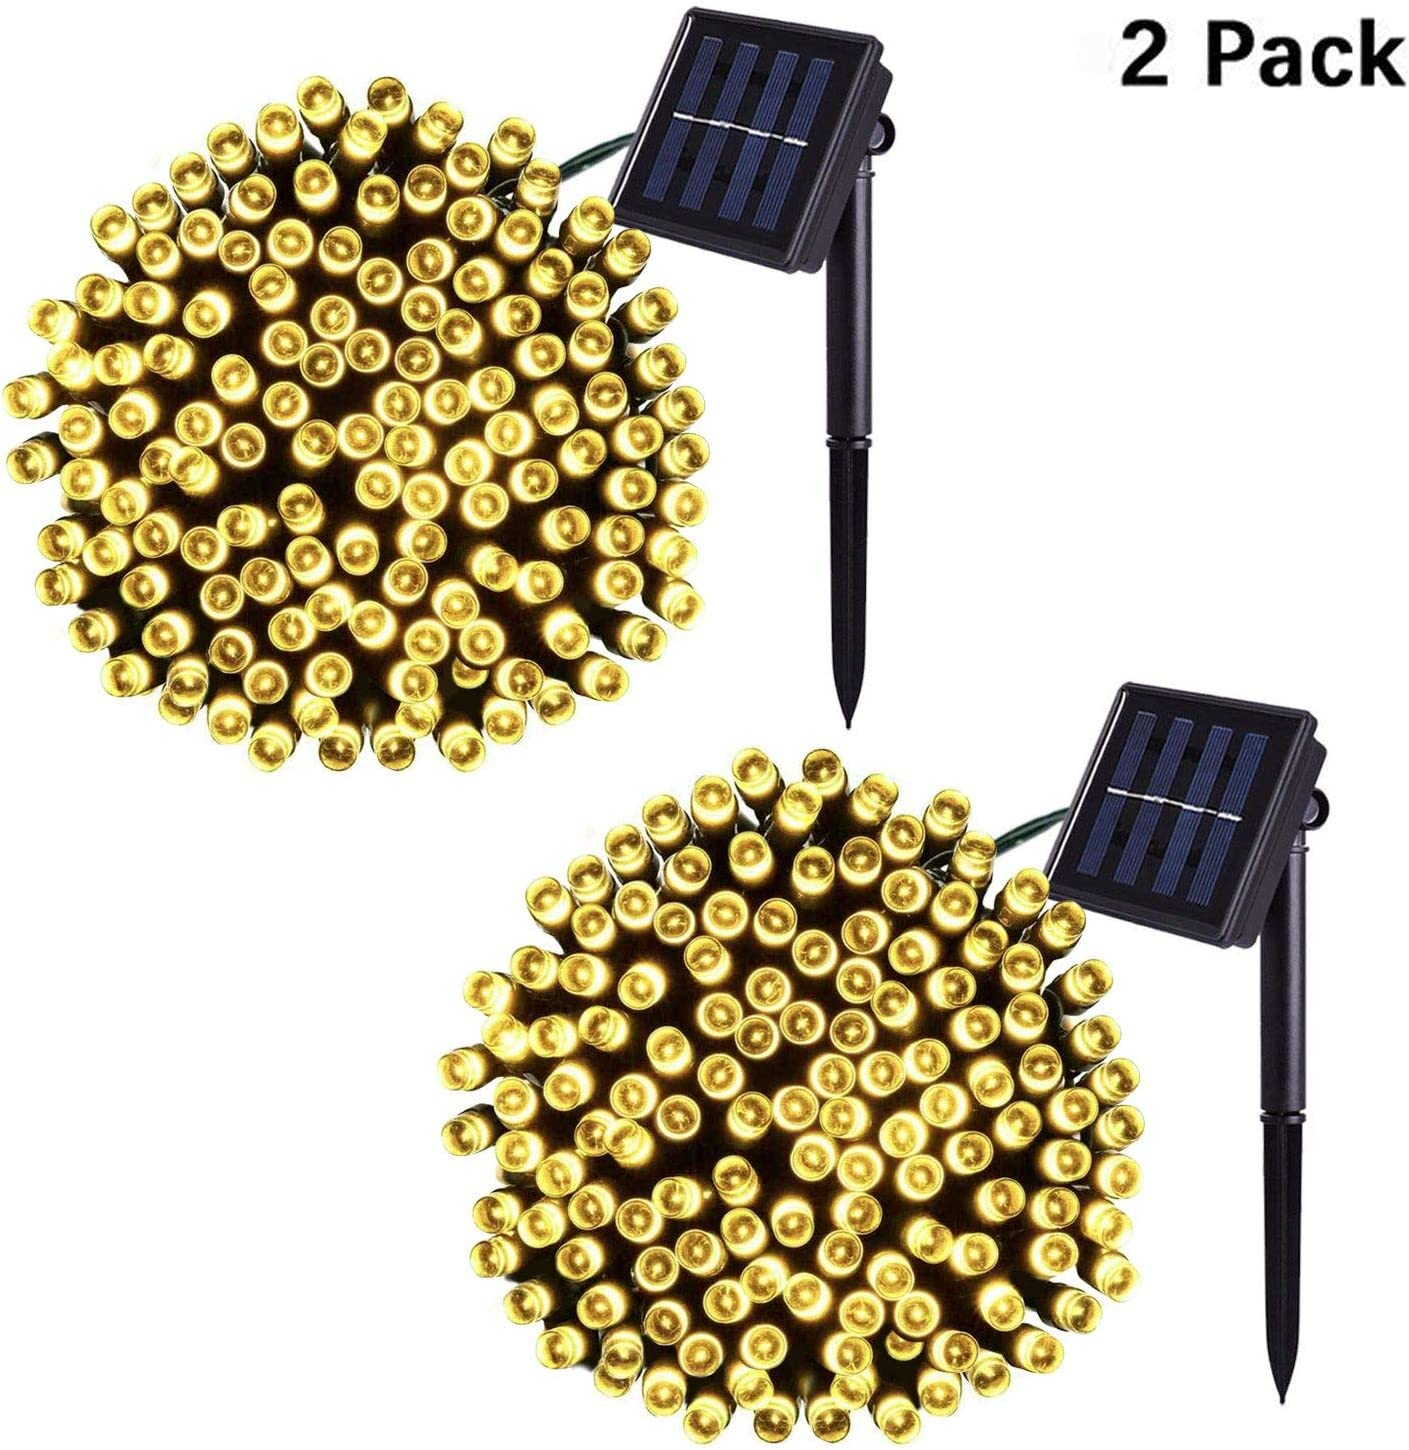 Jiamao 2 Pack 200LED 75.5ft Solar String Light